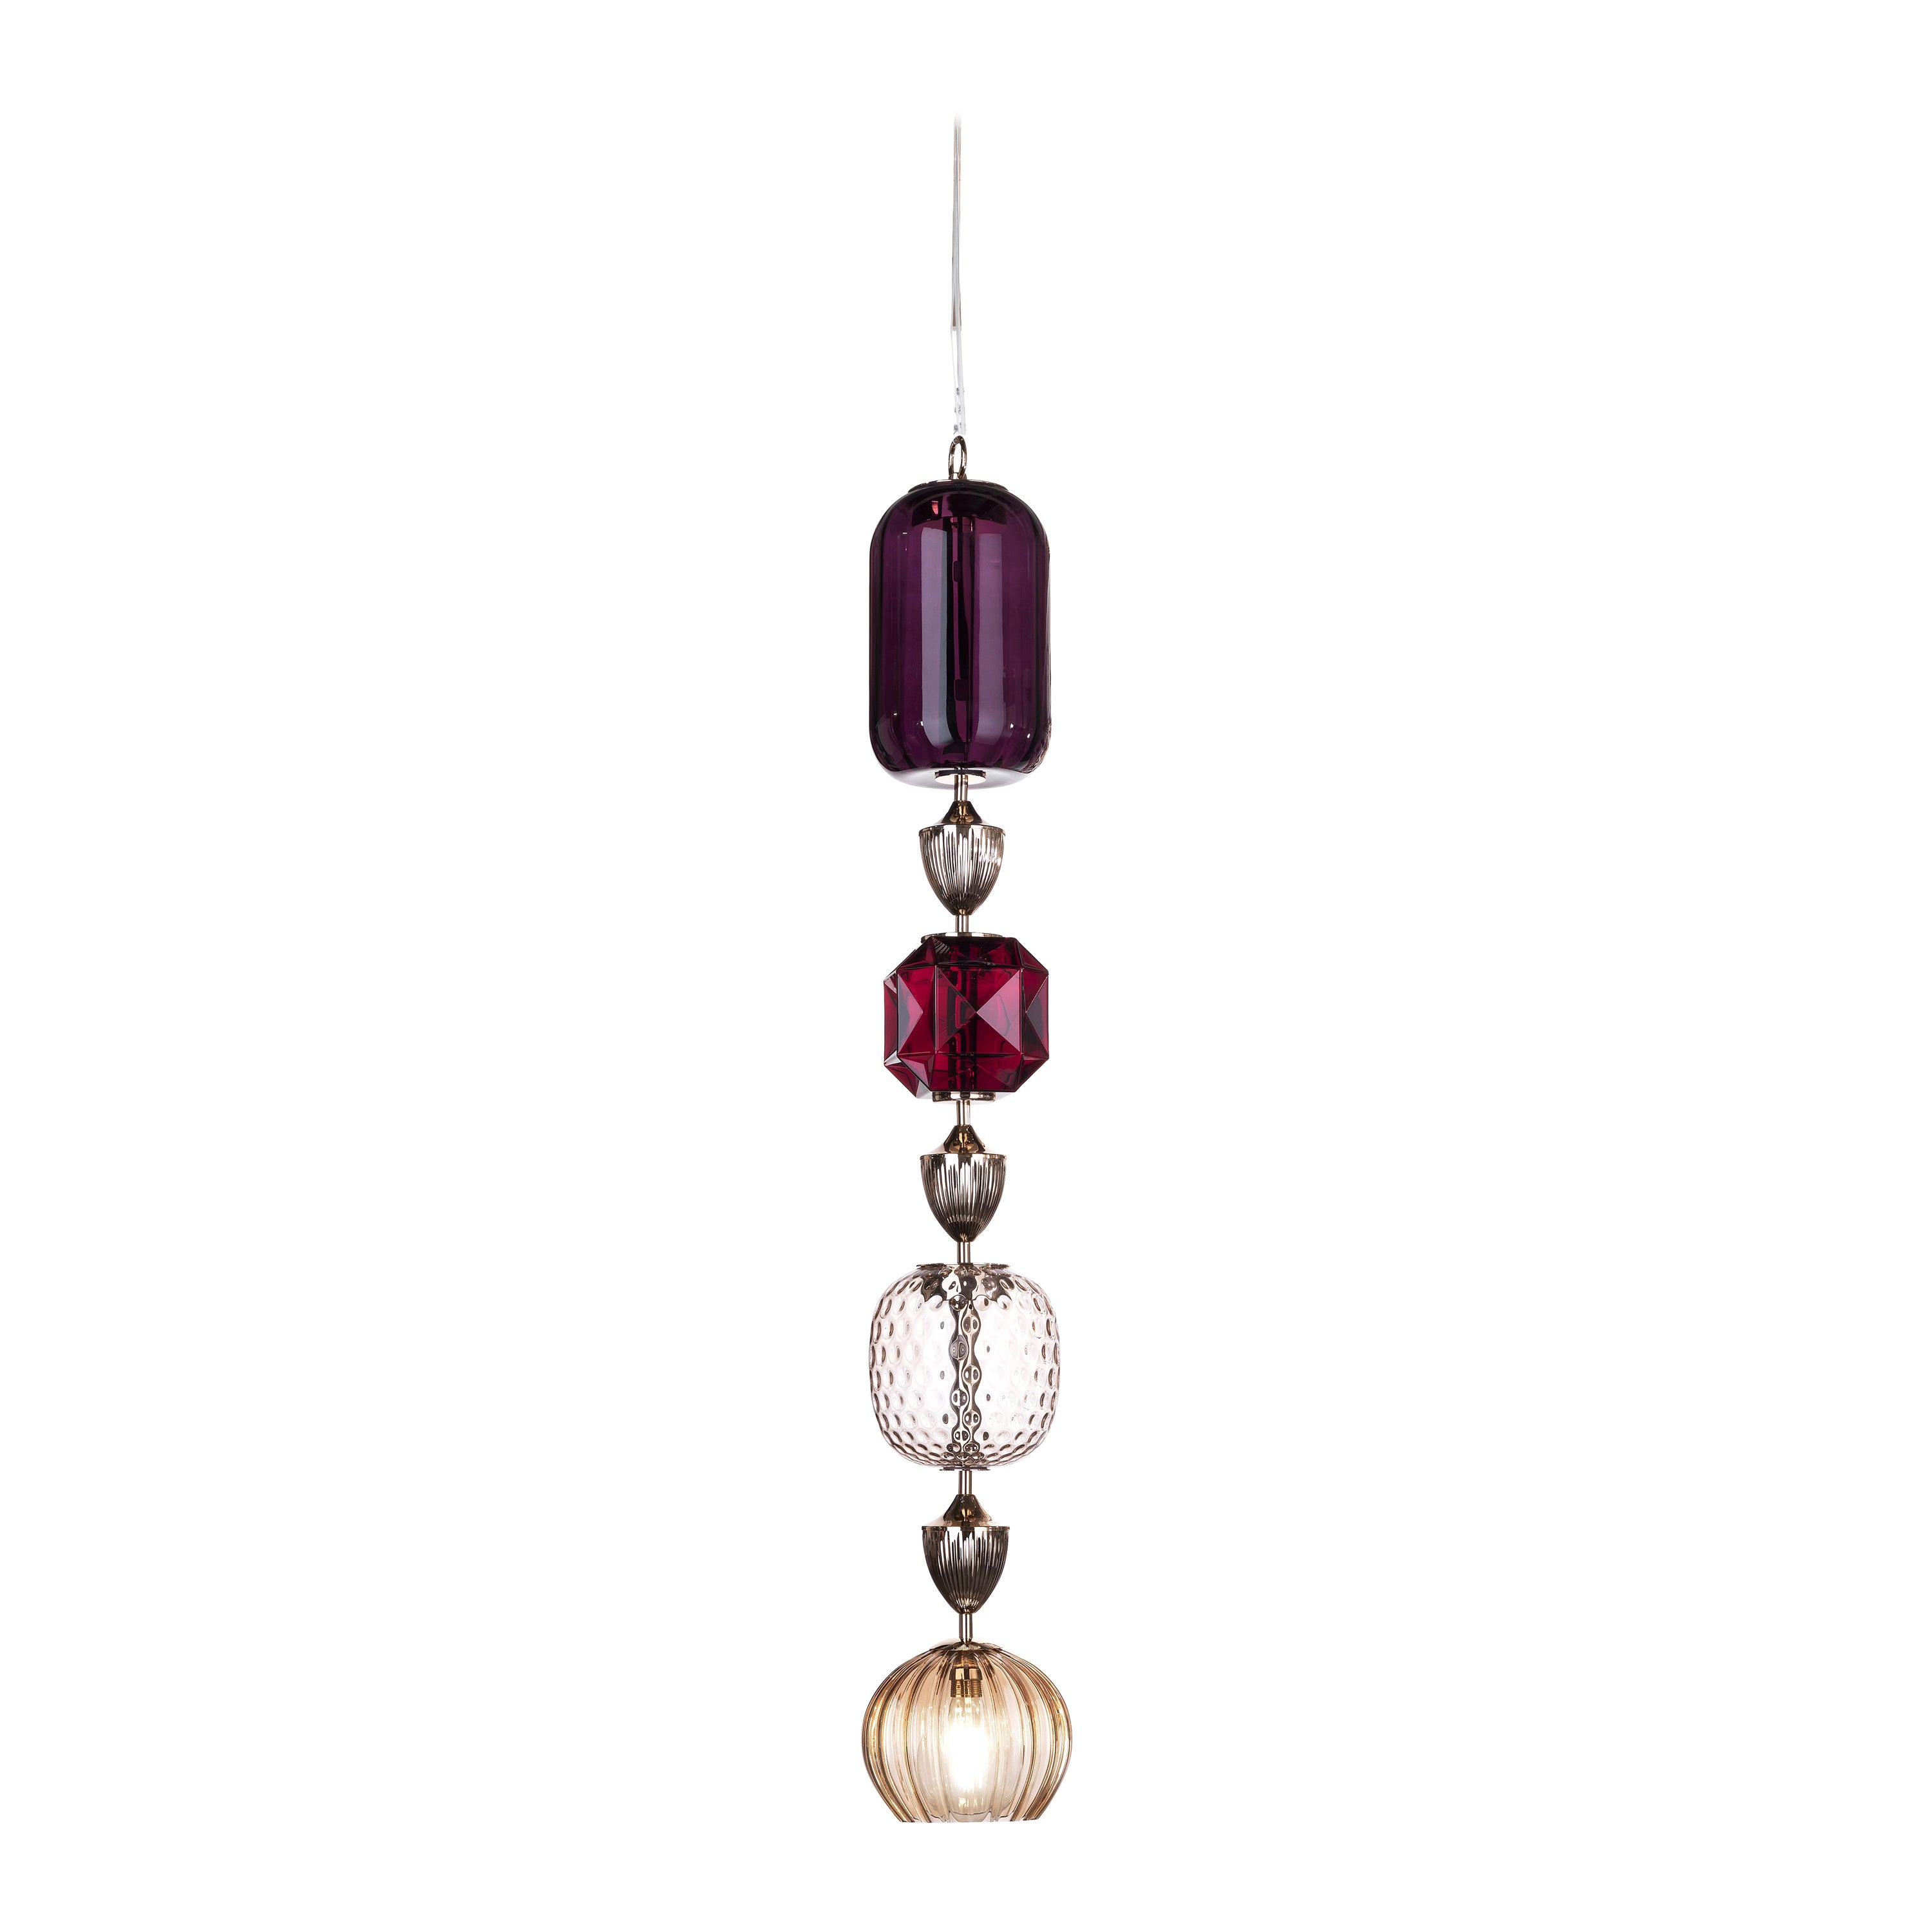 Etro Home Interiors Mckenzie 4-Light Ceiling Lamp in Glass and Metal